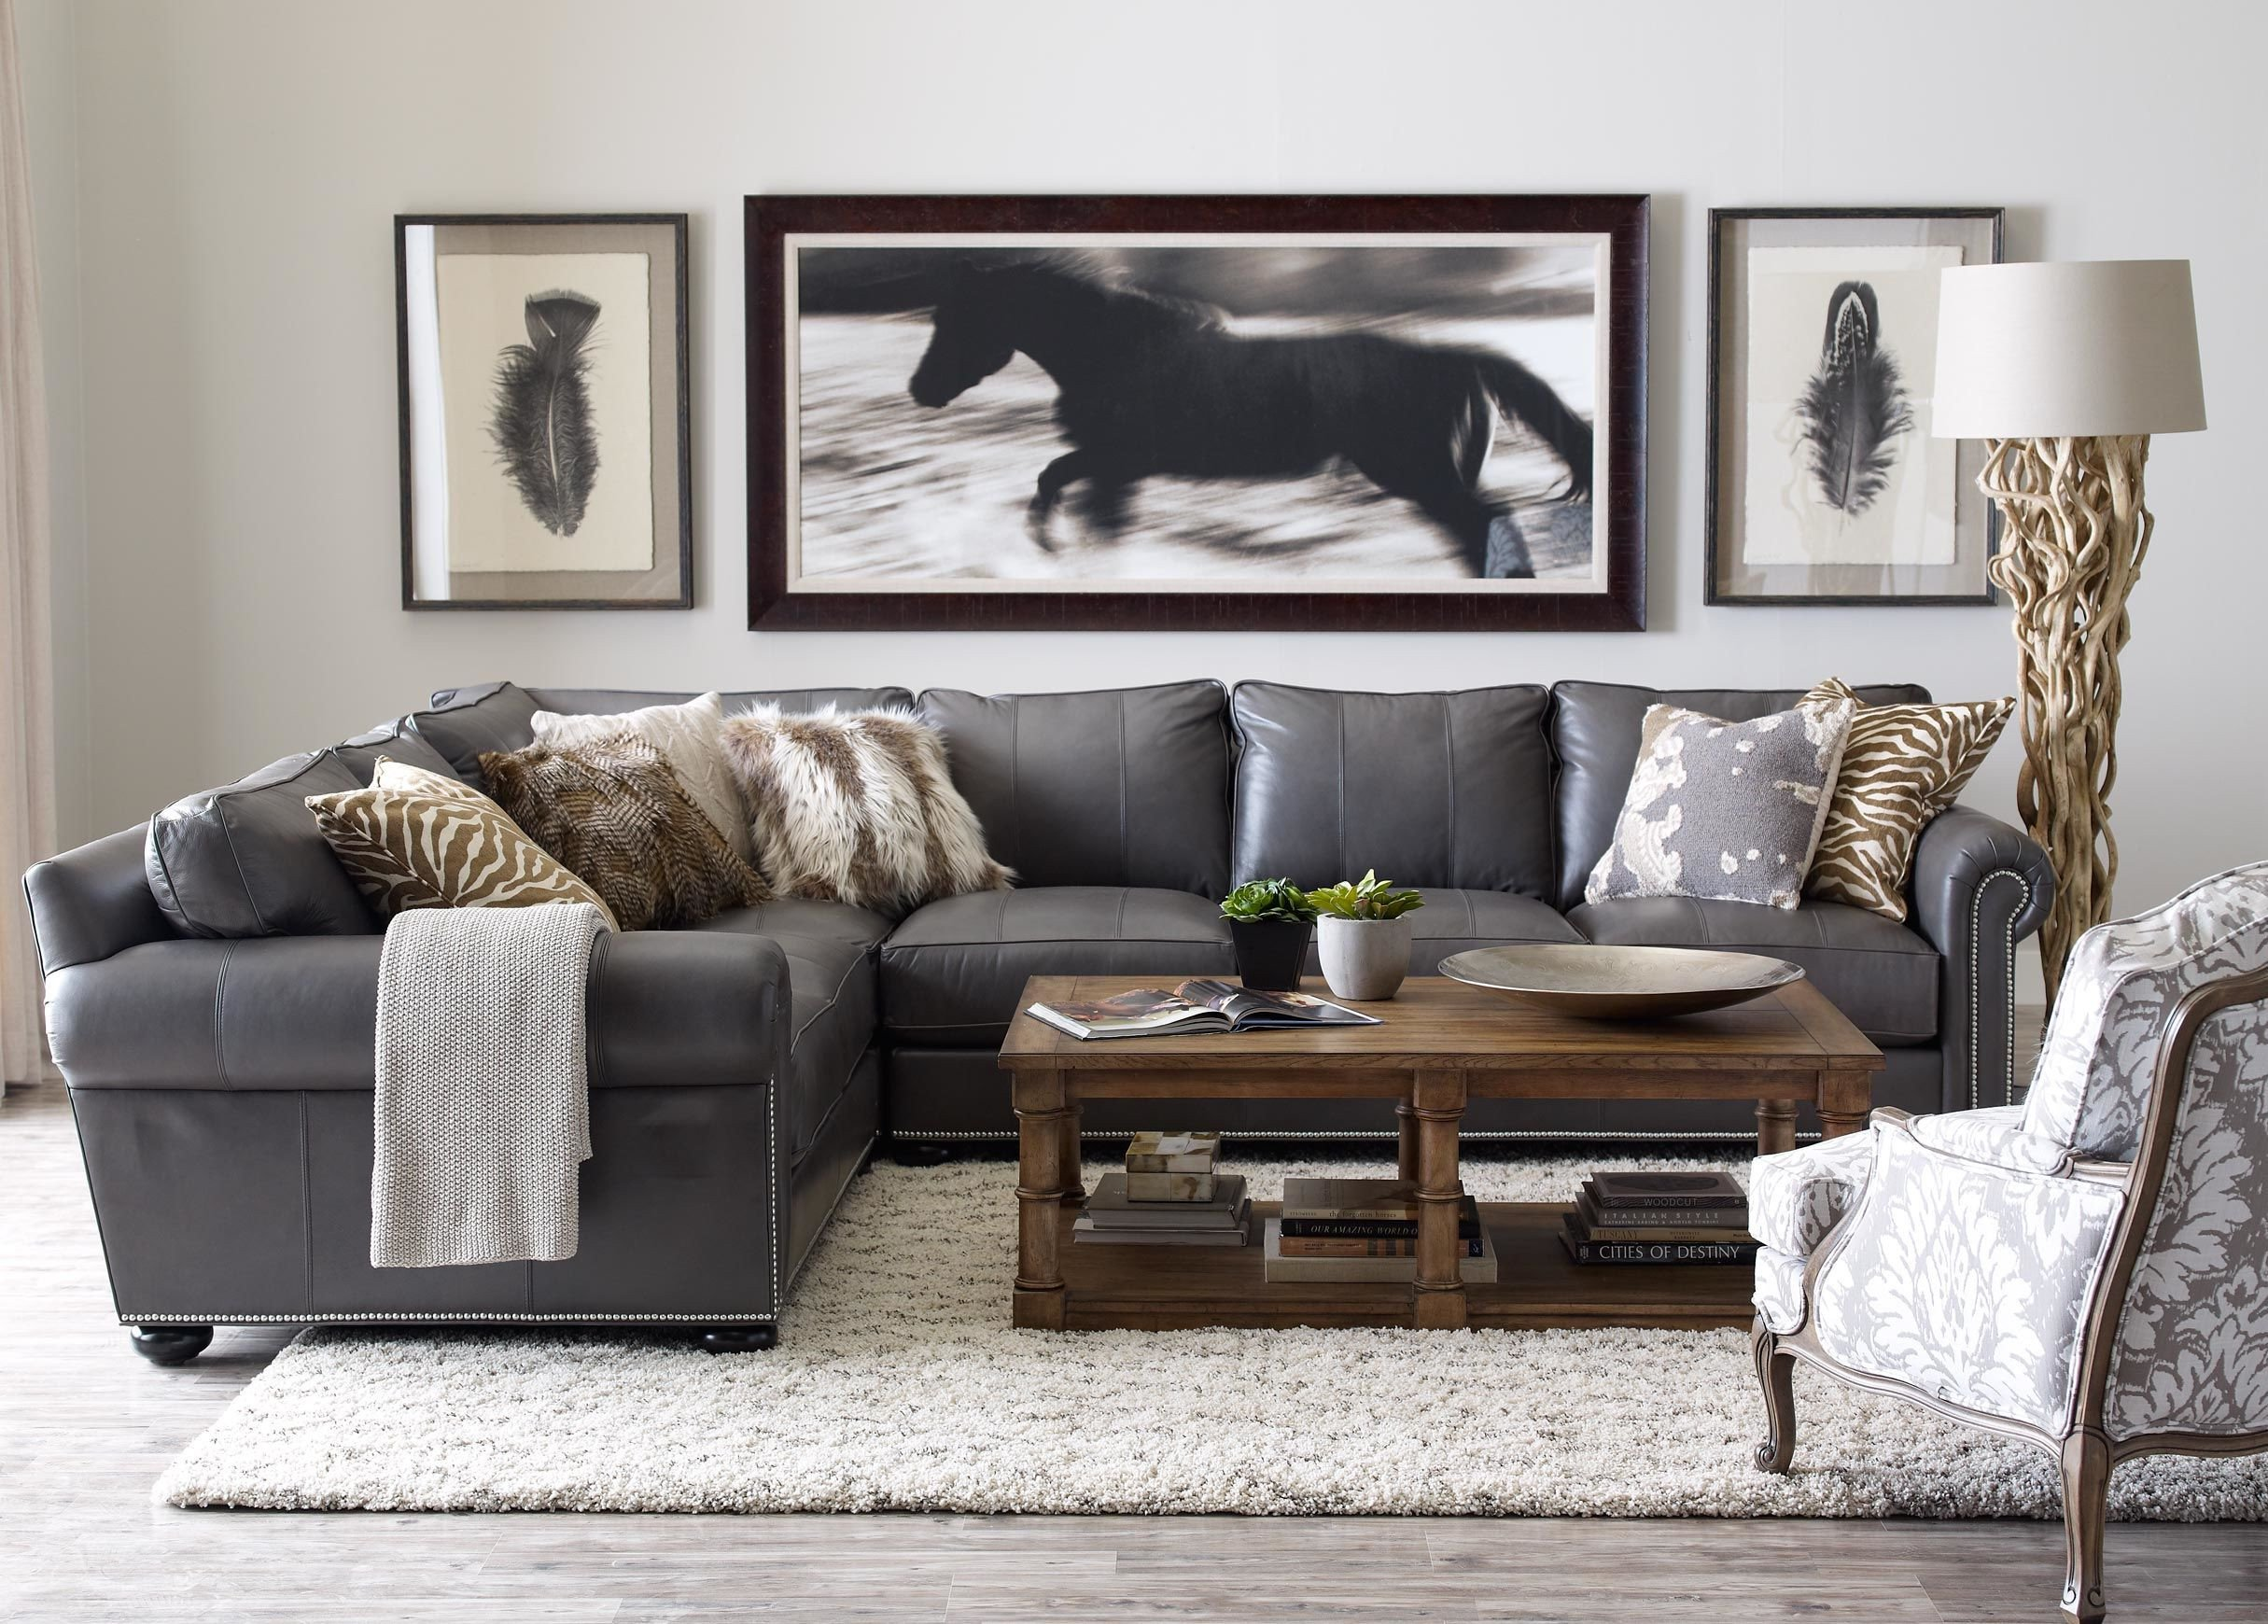 Living Room Decor with Sectional Fresh sofas Excellent Living Room sofas Design with Ethan Allen